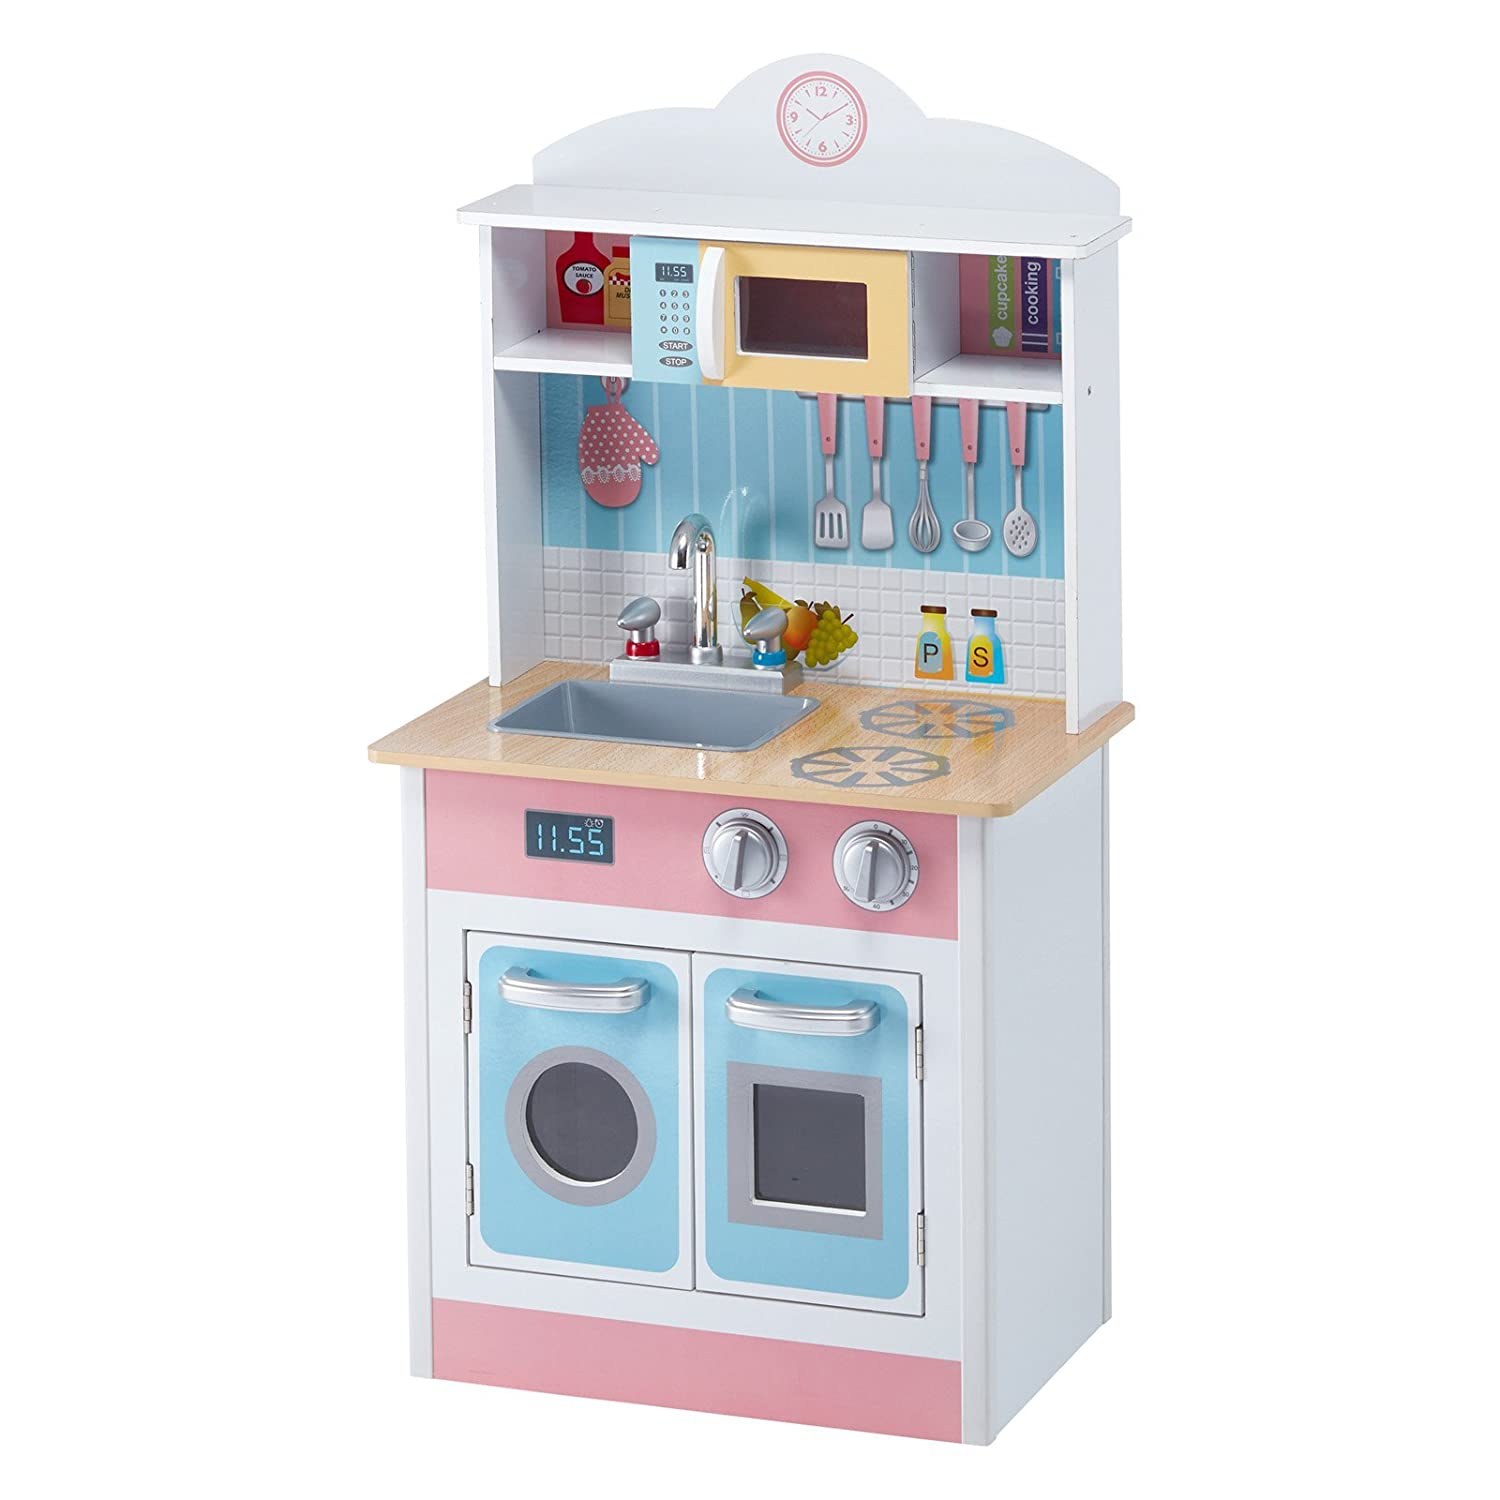 bab1b1c5897 Amazon.com  Teamson Kids Pastel Little Chef Wooden Play Kitchen for Toddler   Toys   Games